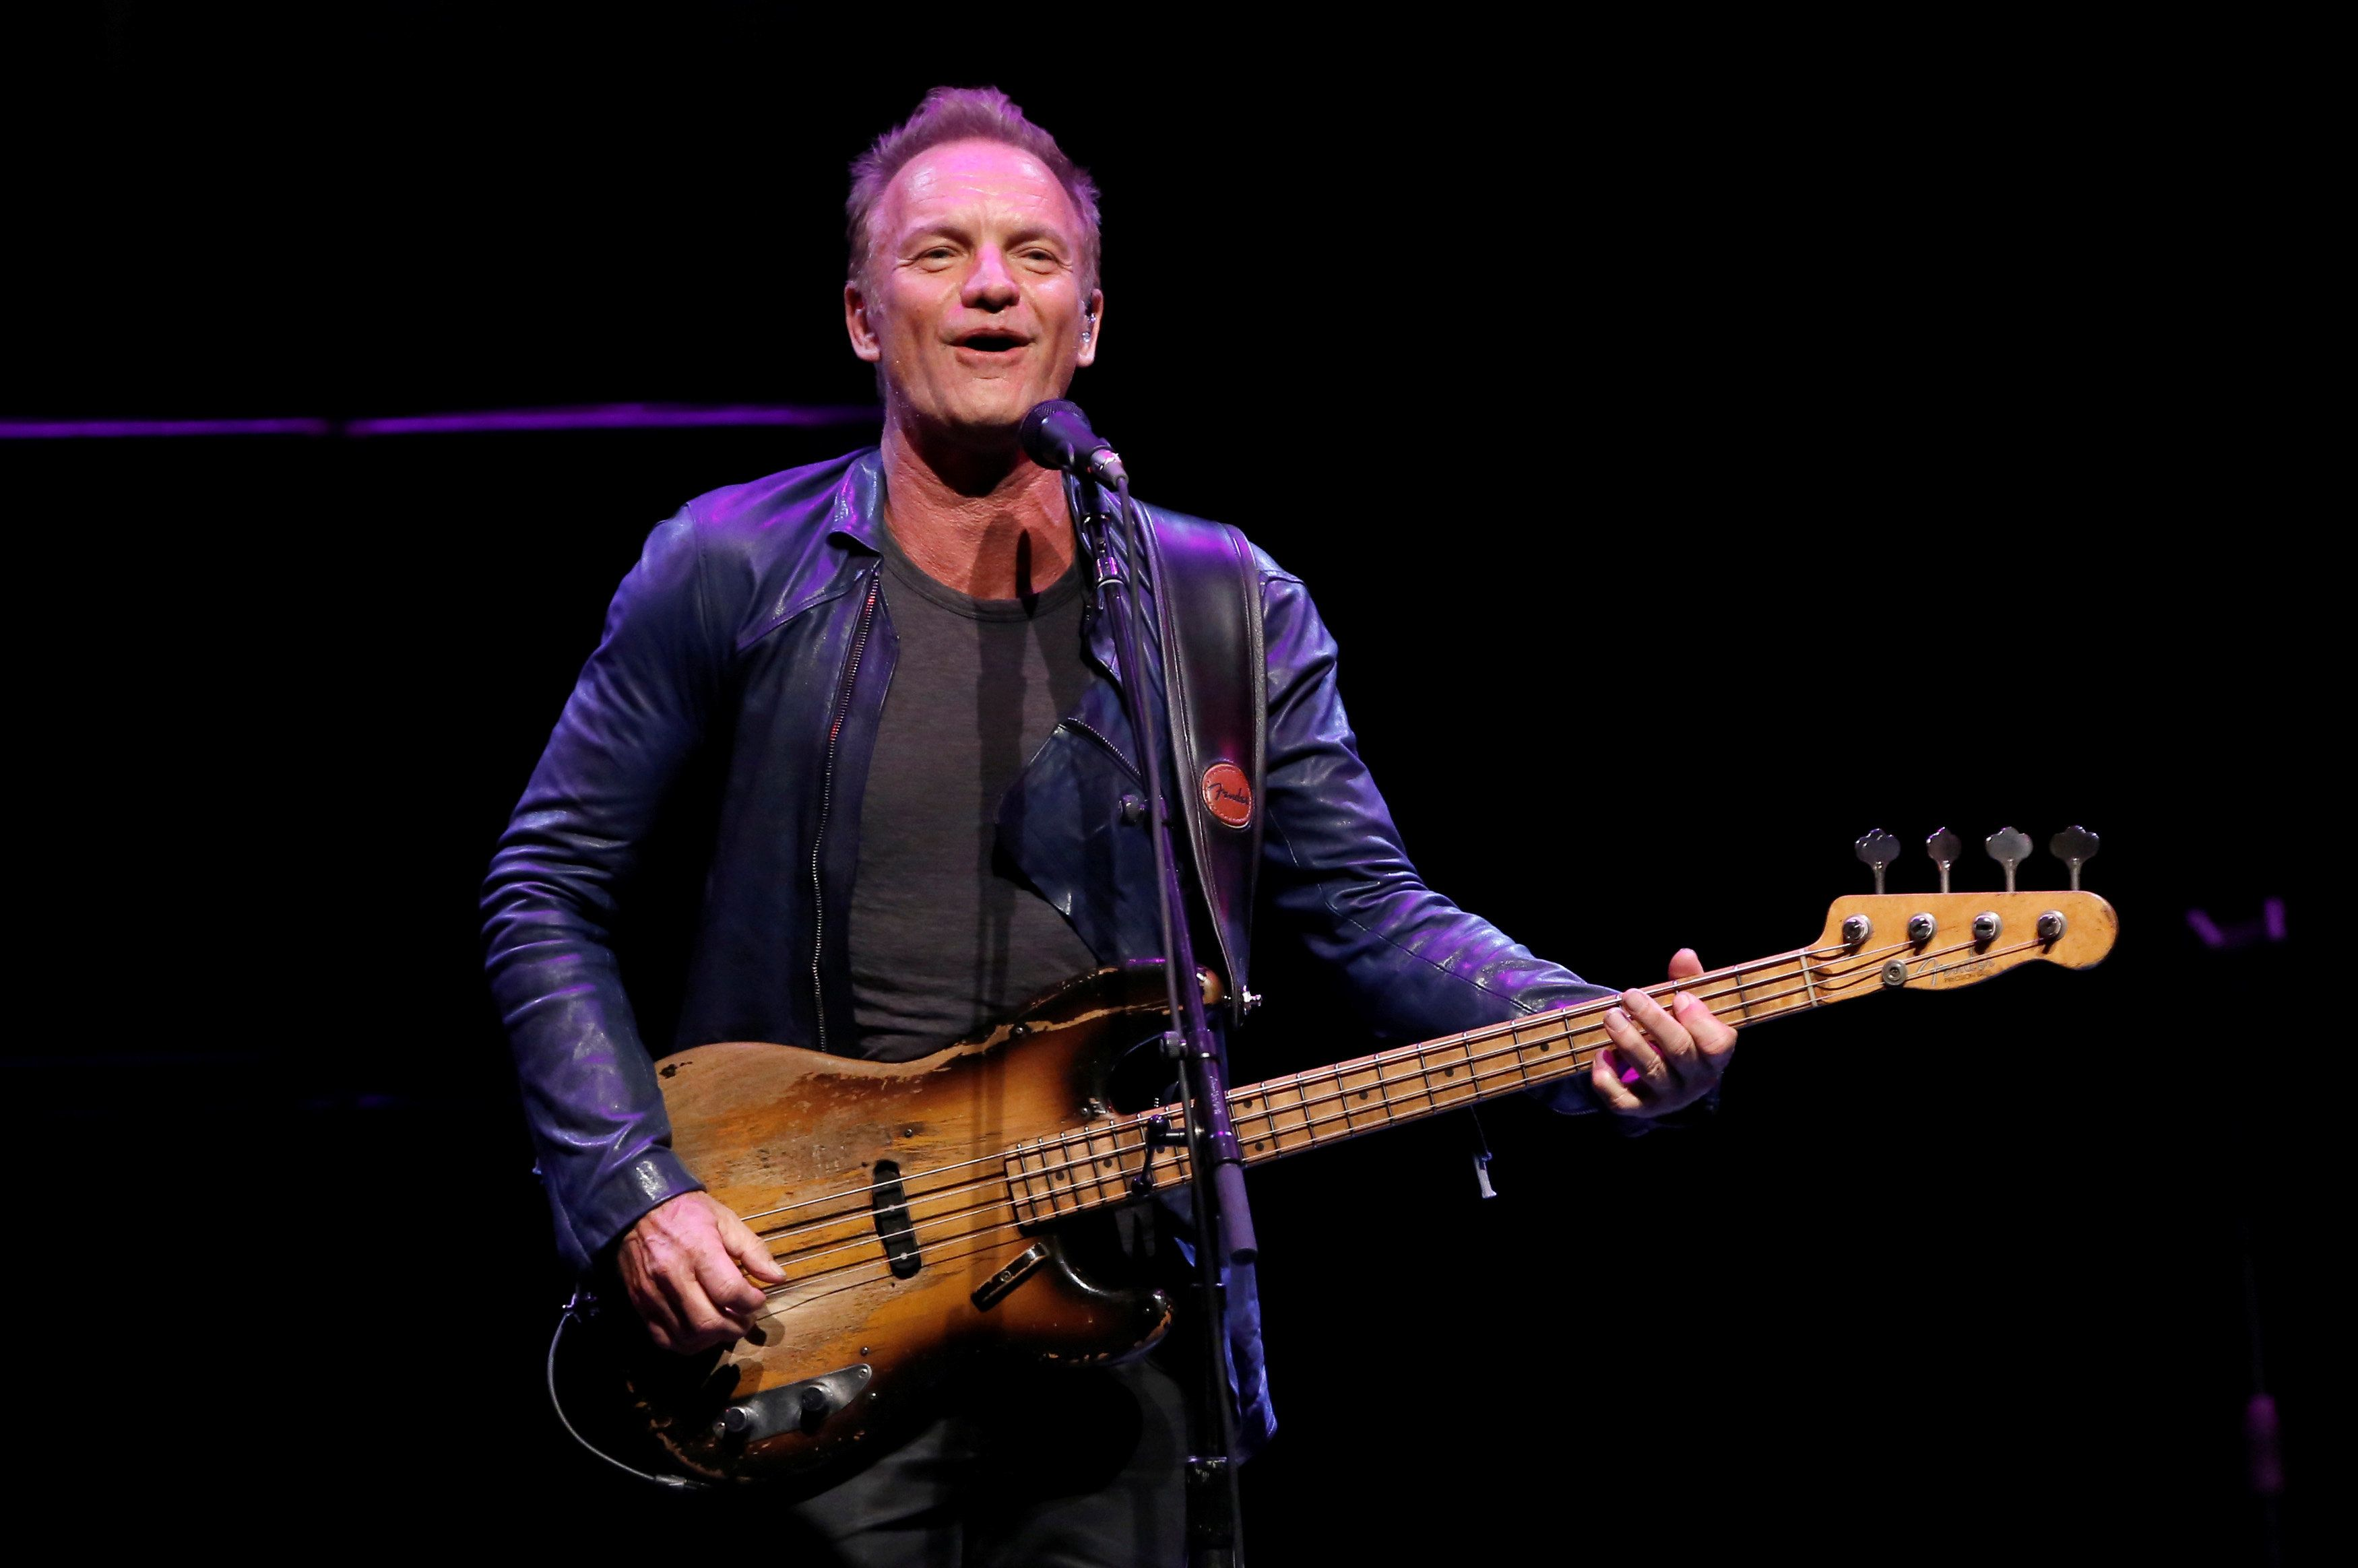 Sting To Reopen Bataclan Concert Hall One Year After Paris Attacks Left 130